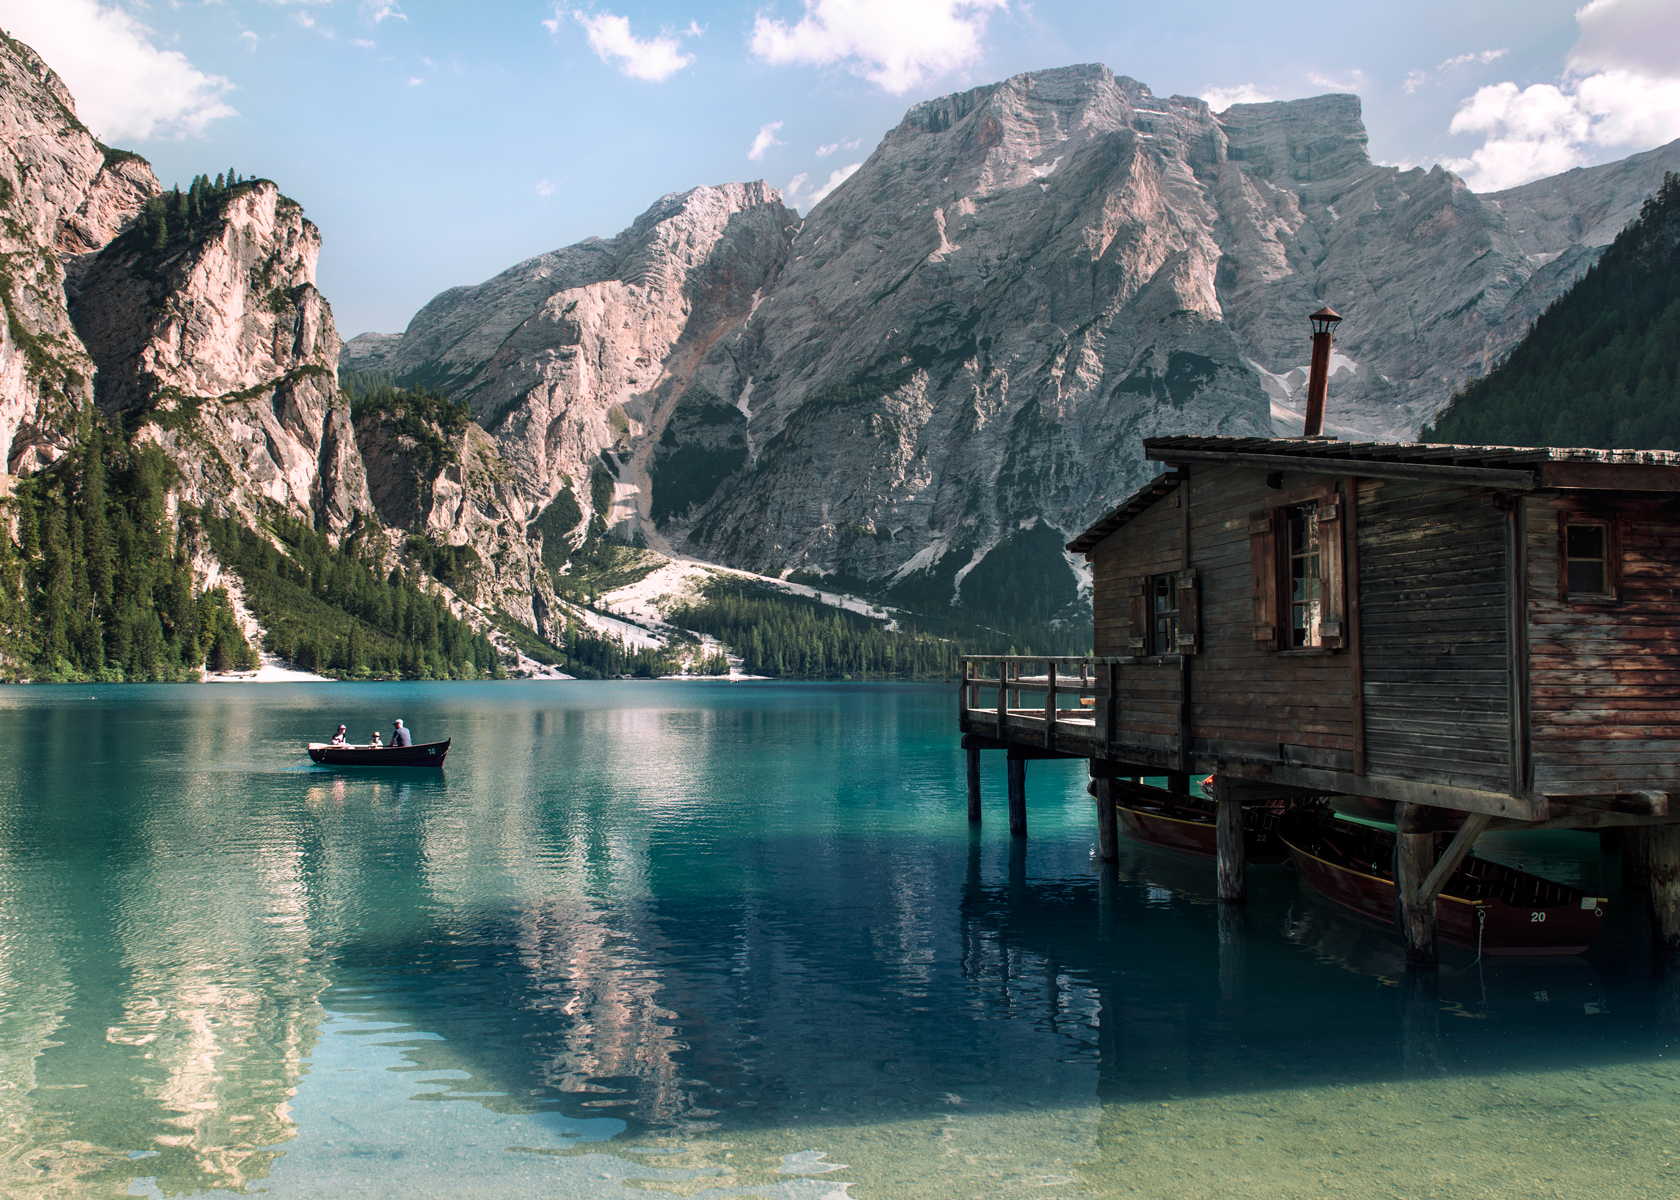 Row boat on Pragser Wildsee, Lago di Braies in Italy. Kirsty Owen photography